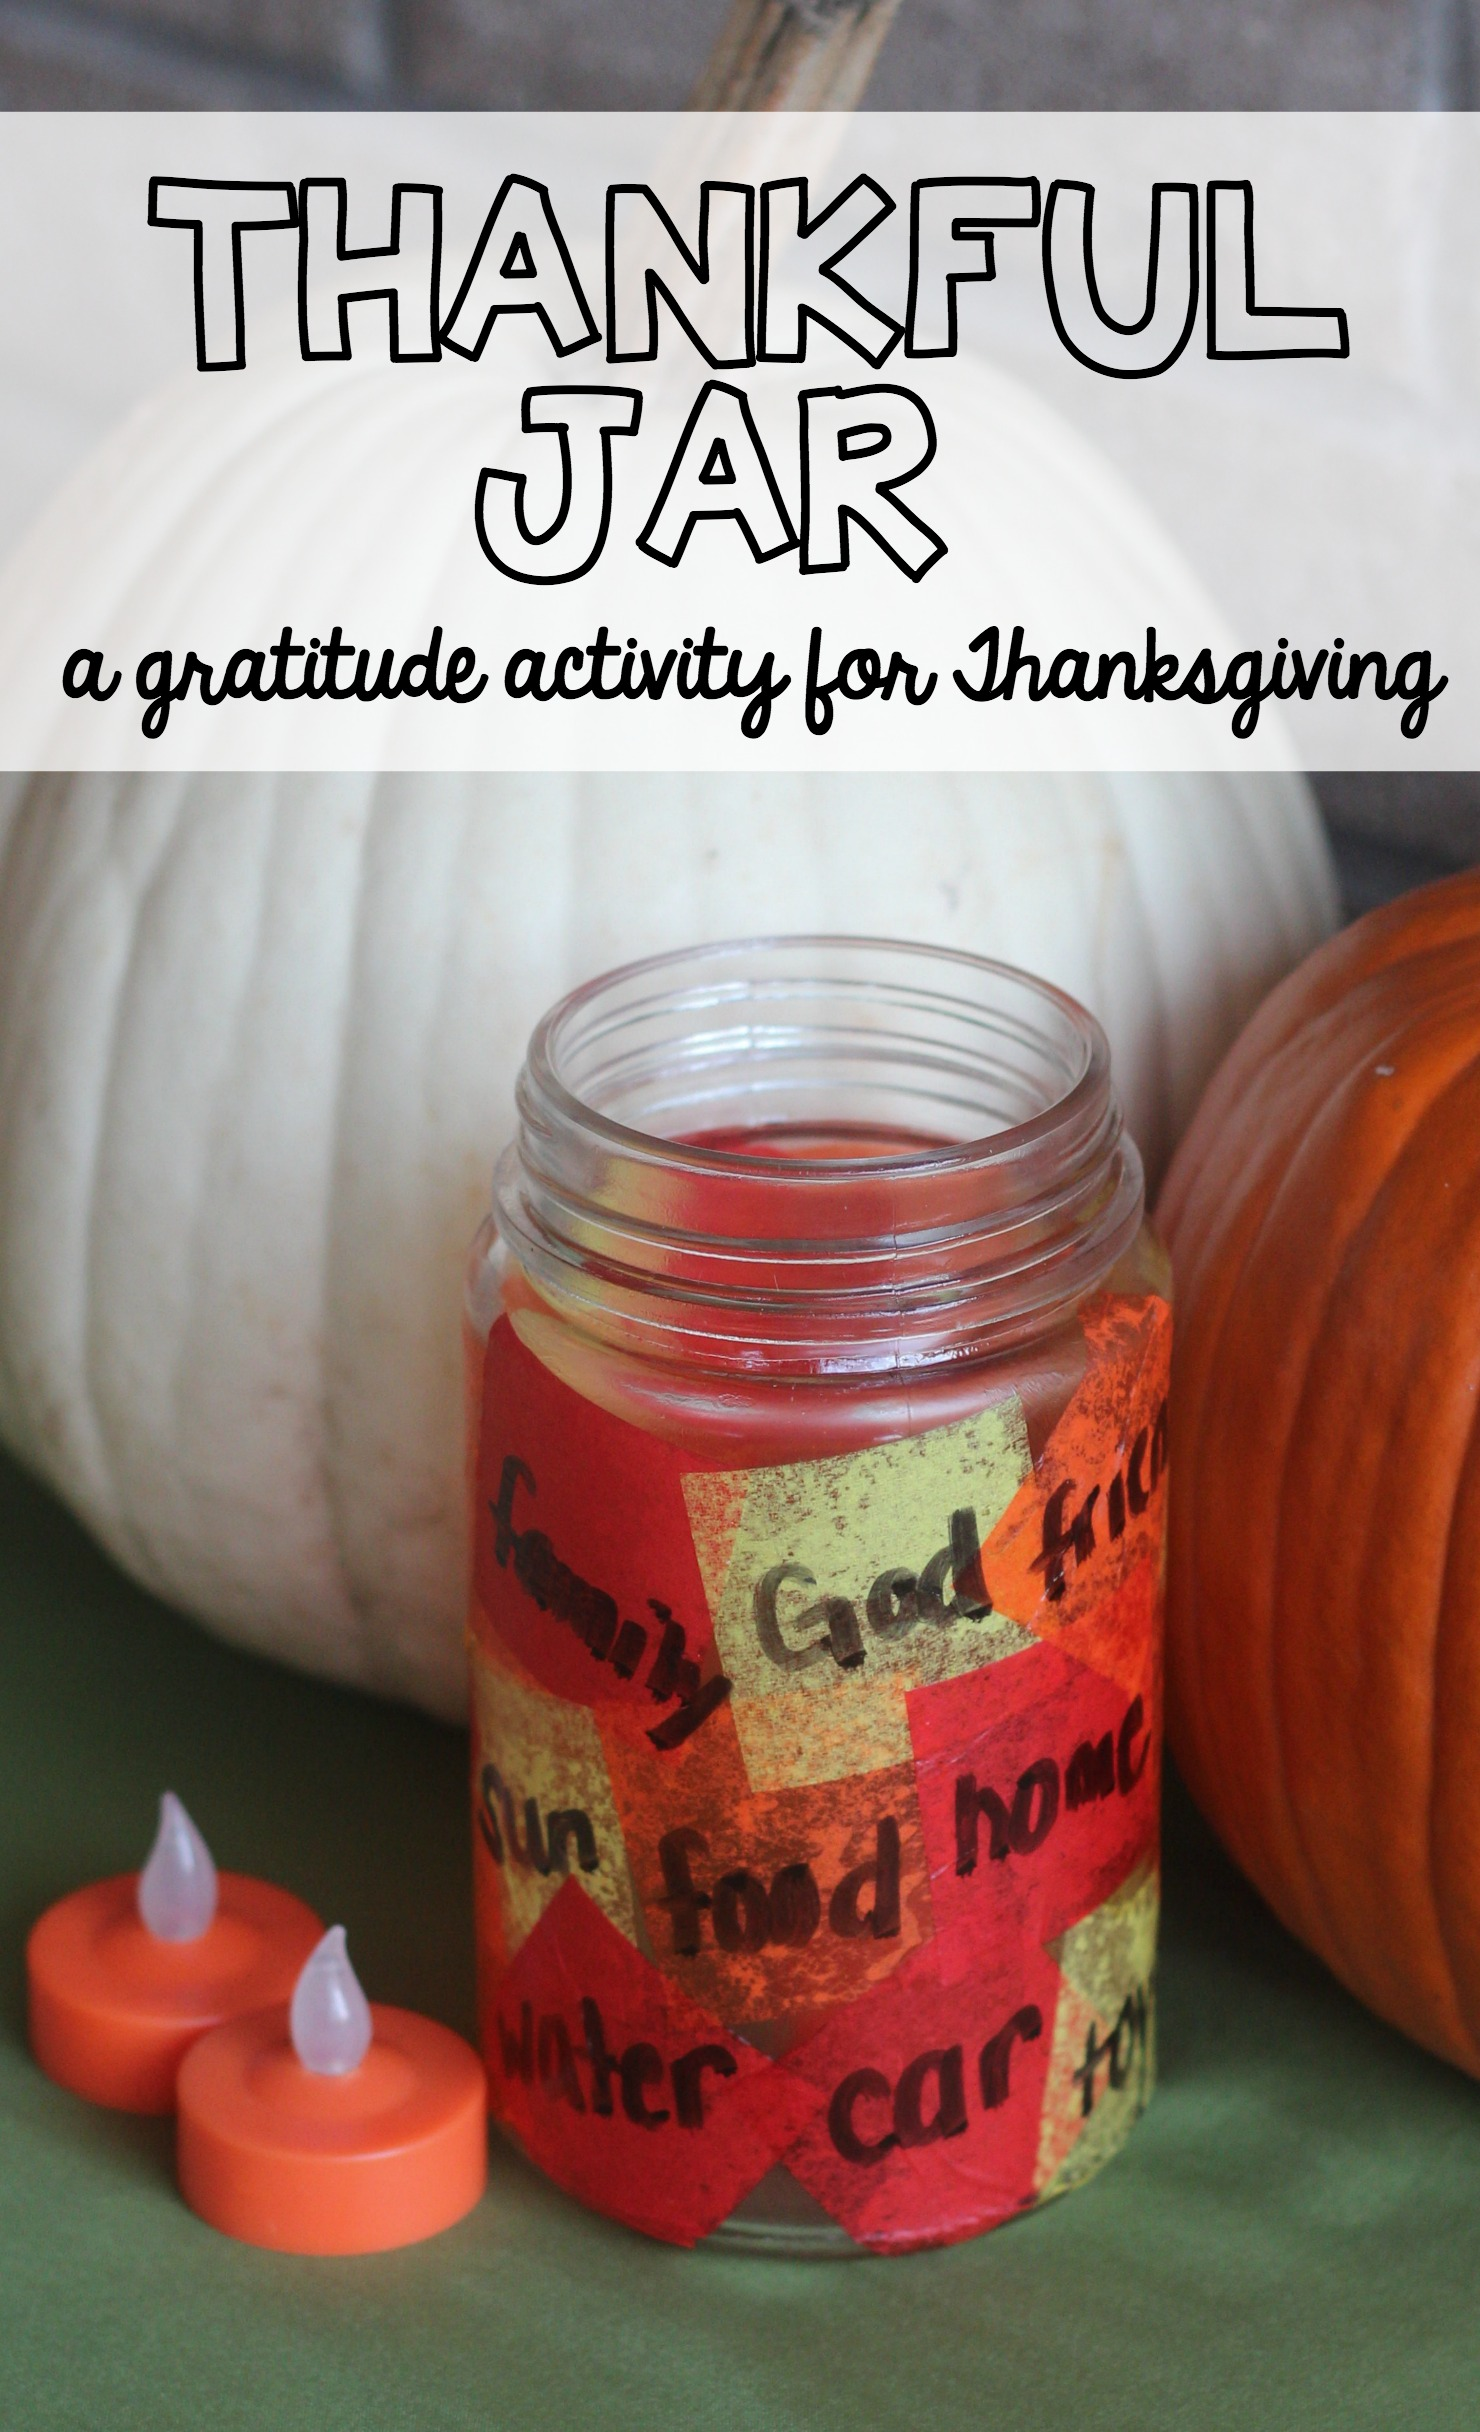 Thankful Jar - gratitude activity for Thanksgiving